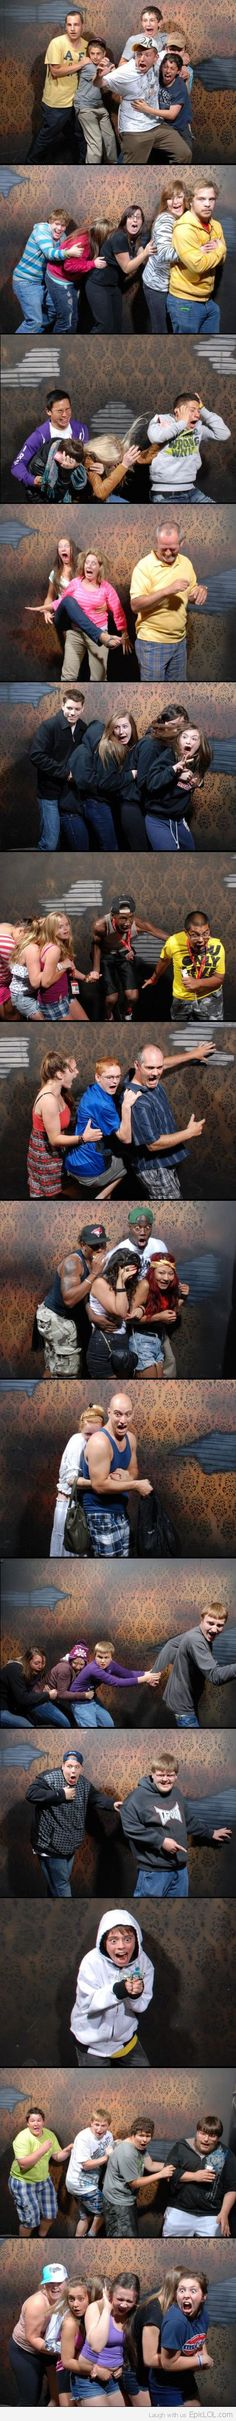 Stills from a haunted house....dying! Lollllll.